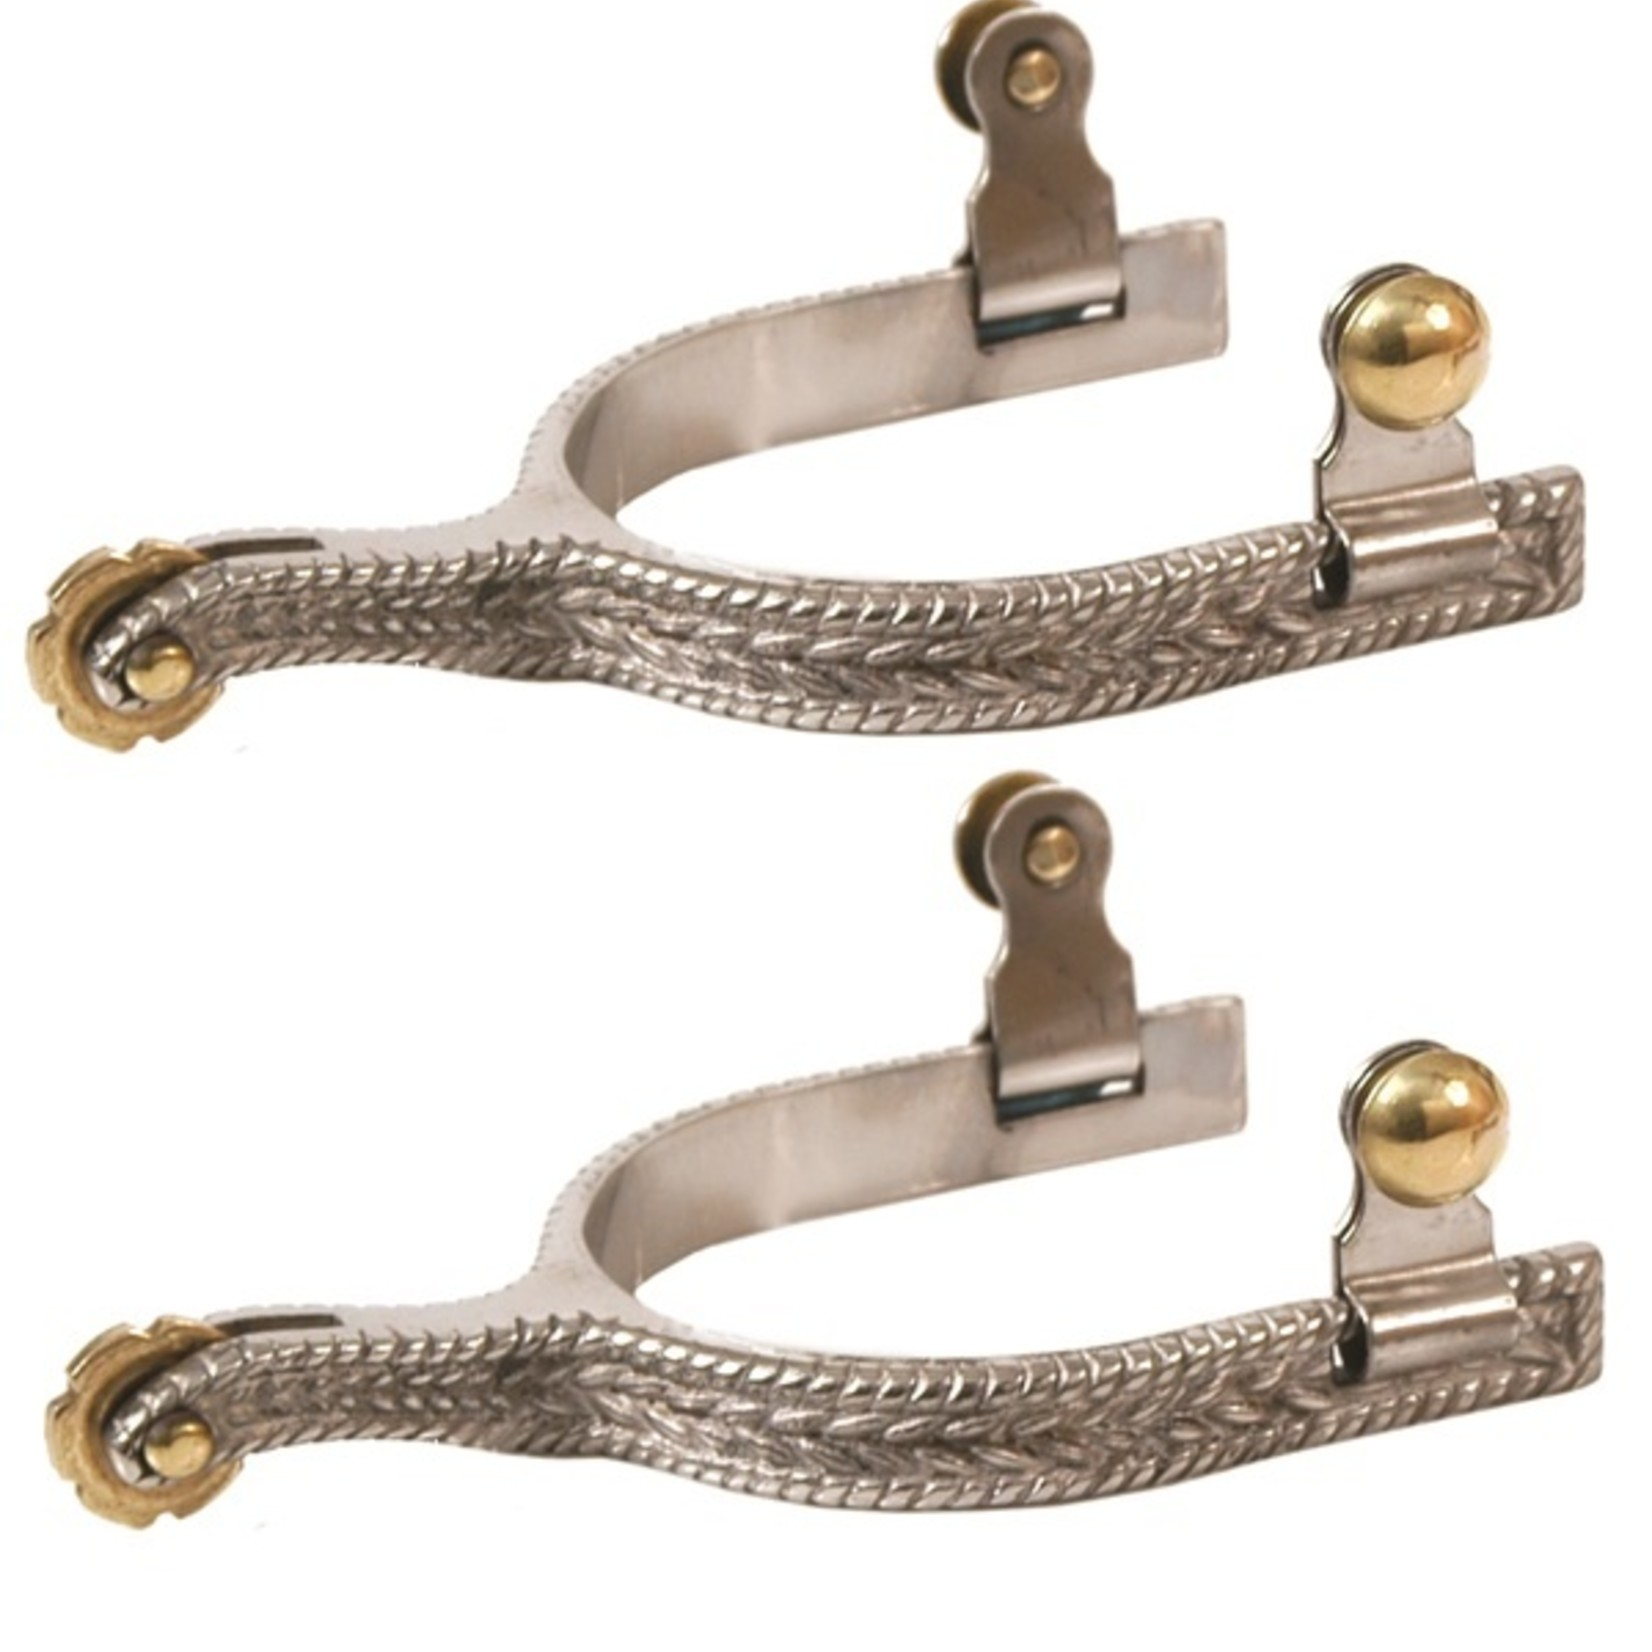 Rope Design Roping Spurs